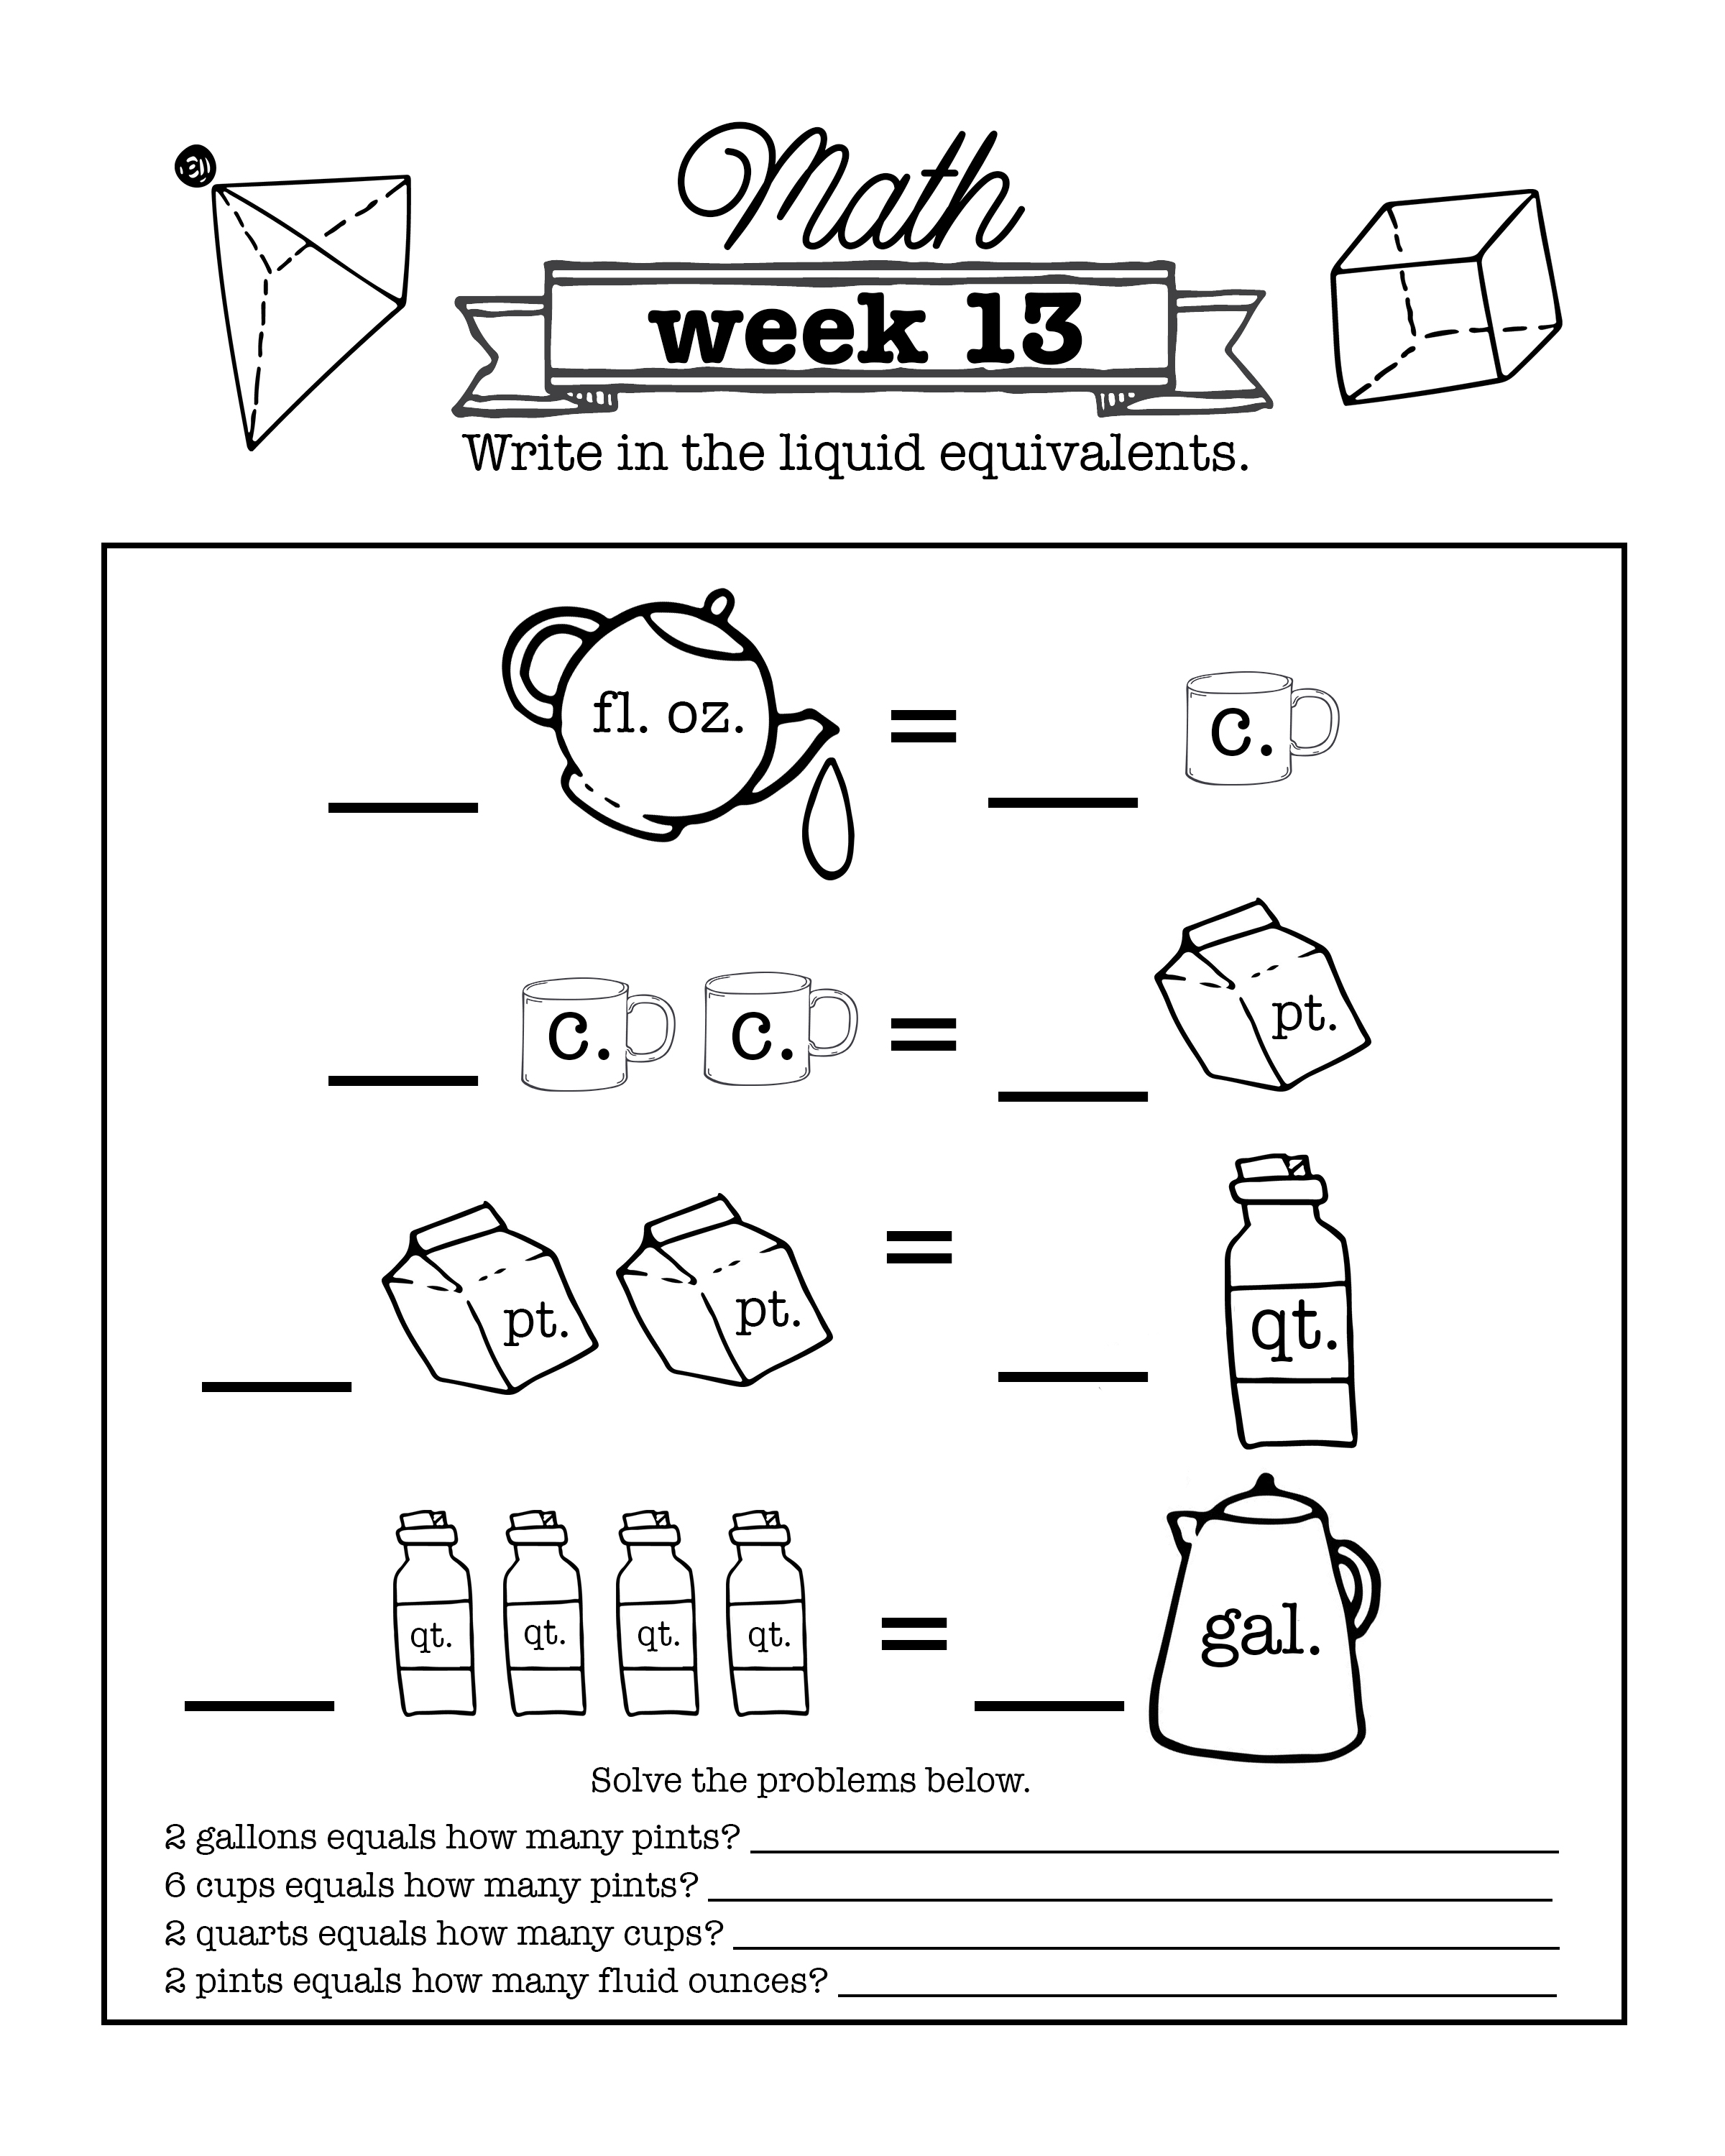 Cycle 1 2 3 4th 5th Edition Math Weeks 1 24 Worksheets Homeschooldownload Com